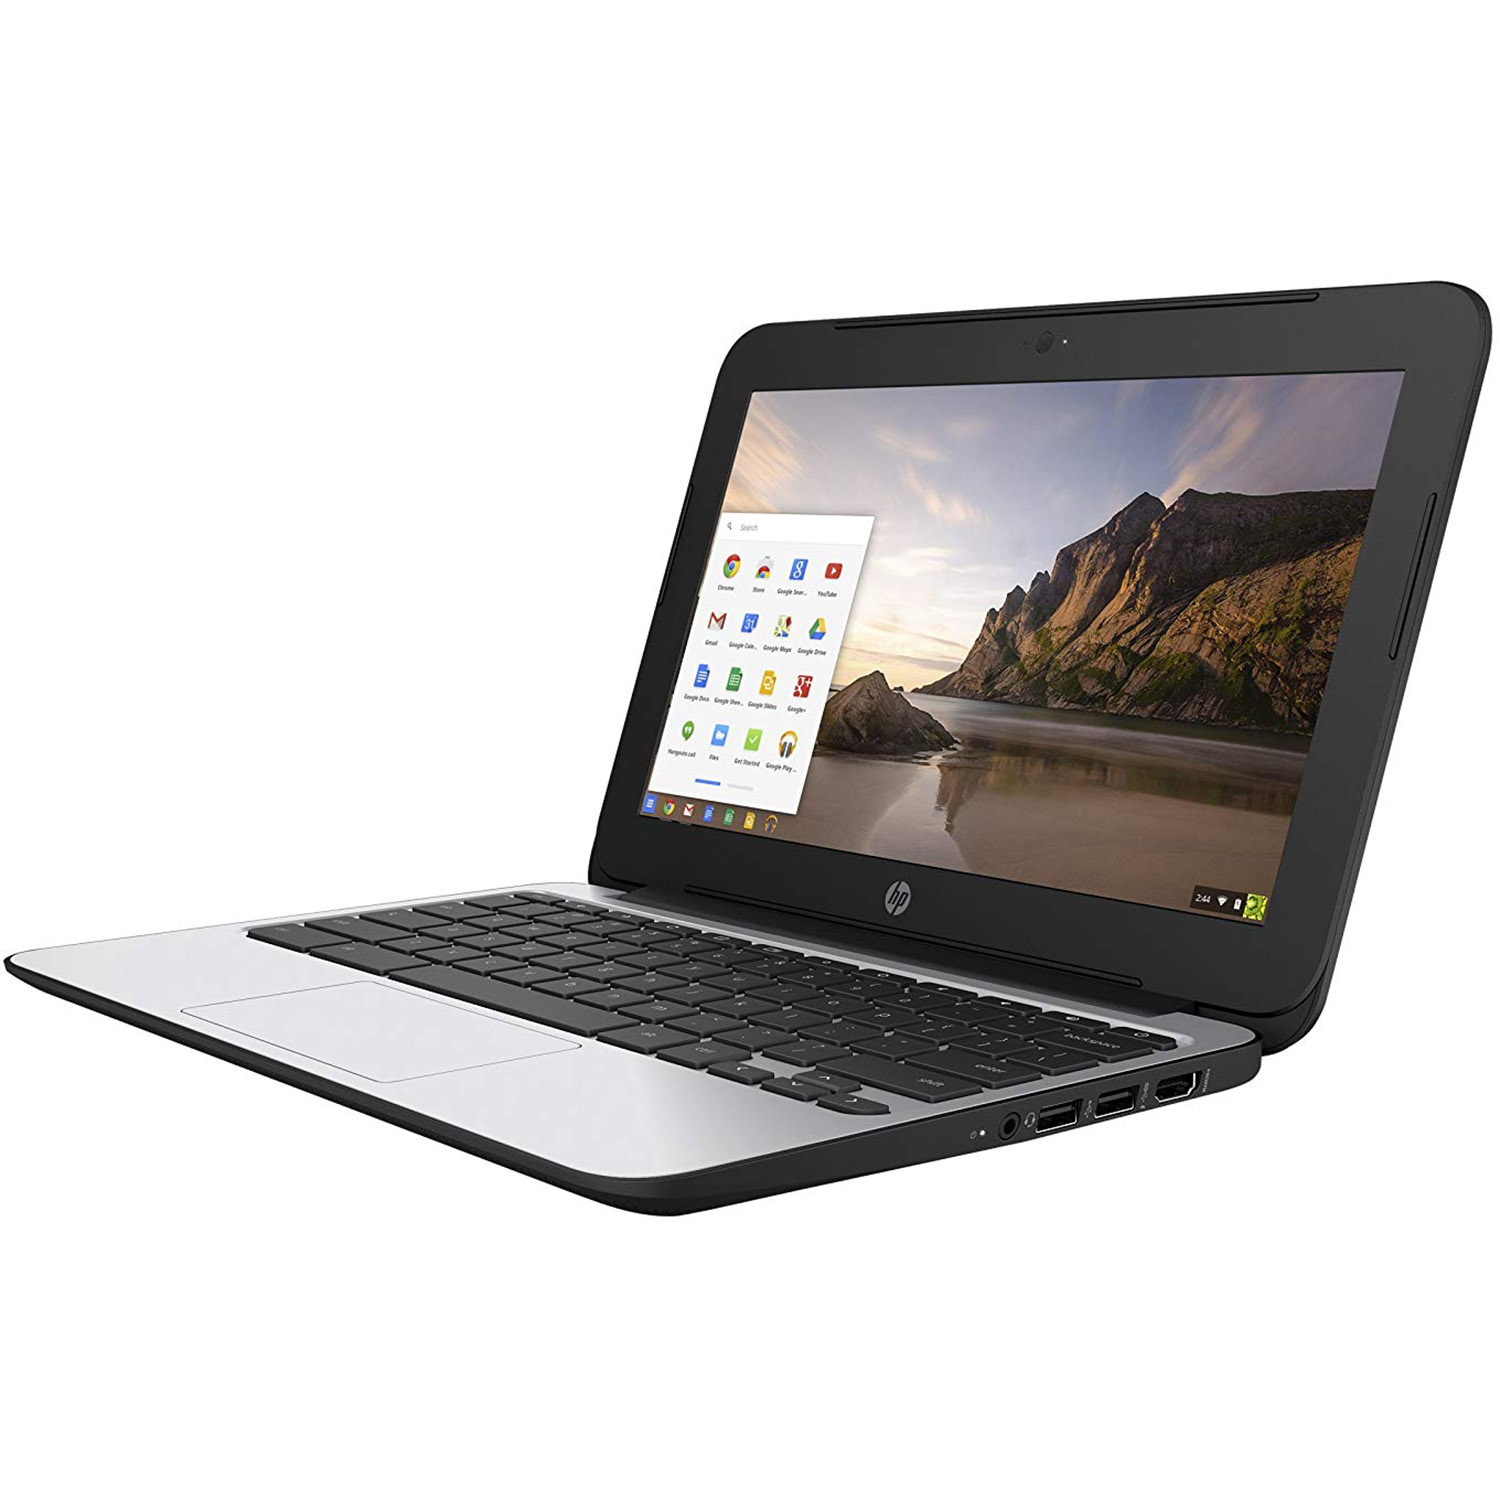 Refurbished HP ChromeBook 11 G4 EE: 11.6-inch (1366x768) Intel Celeron N2840 2.16GHz, Gray